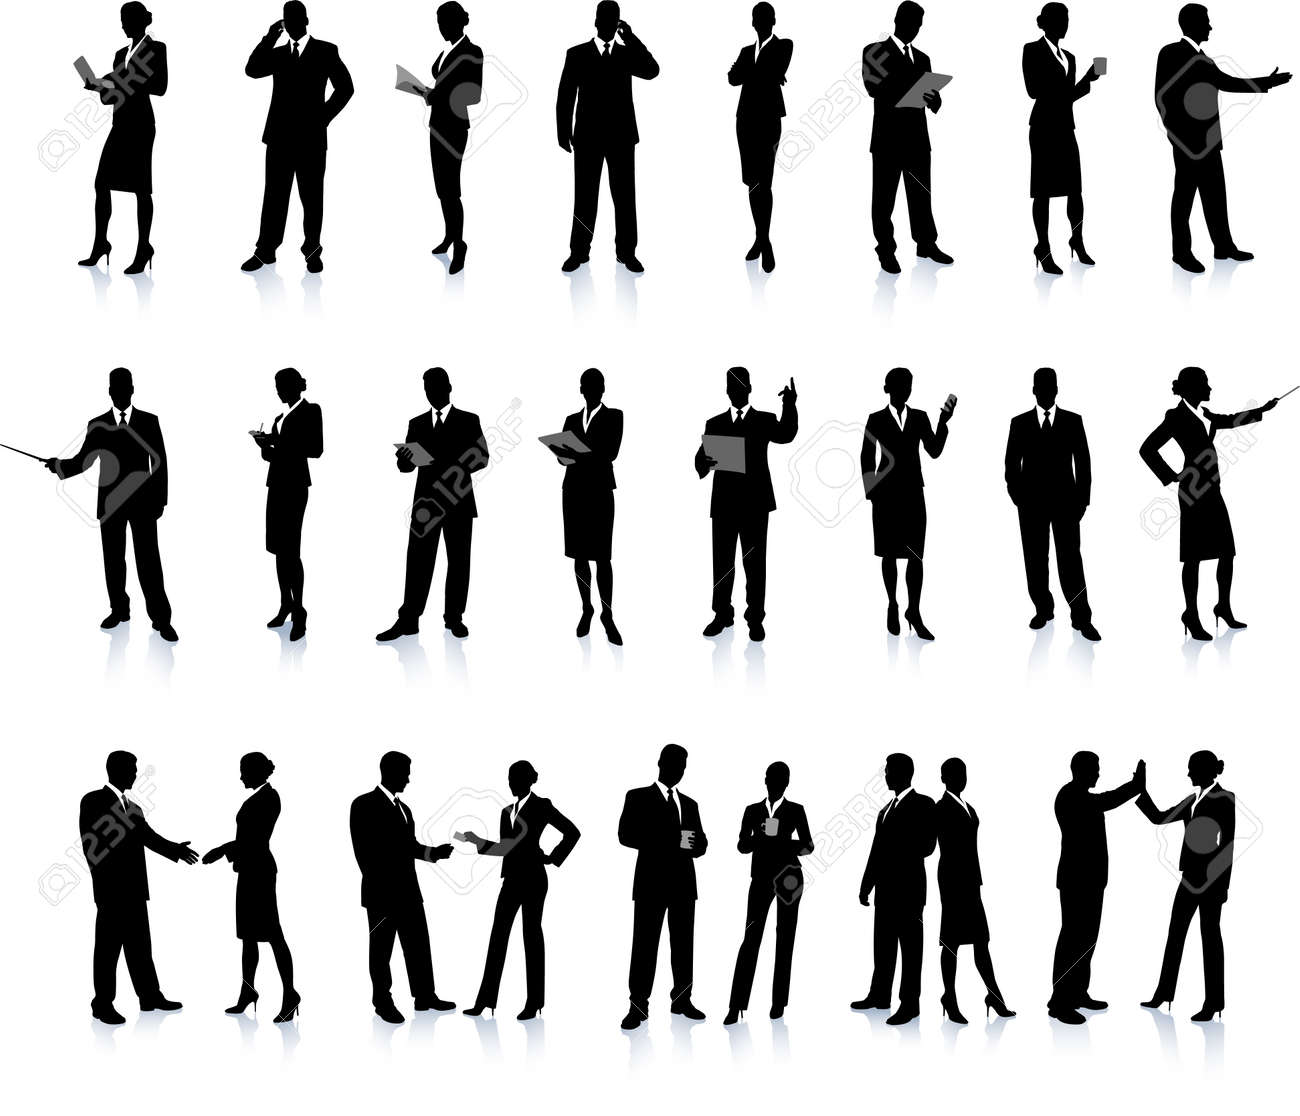 Business People Silhouette Stock Vector - 22373087